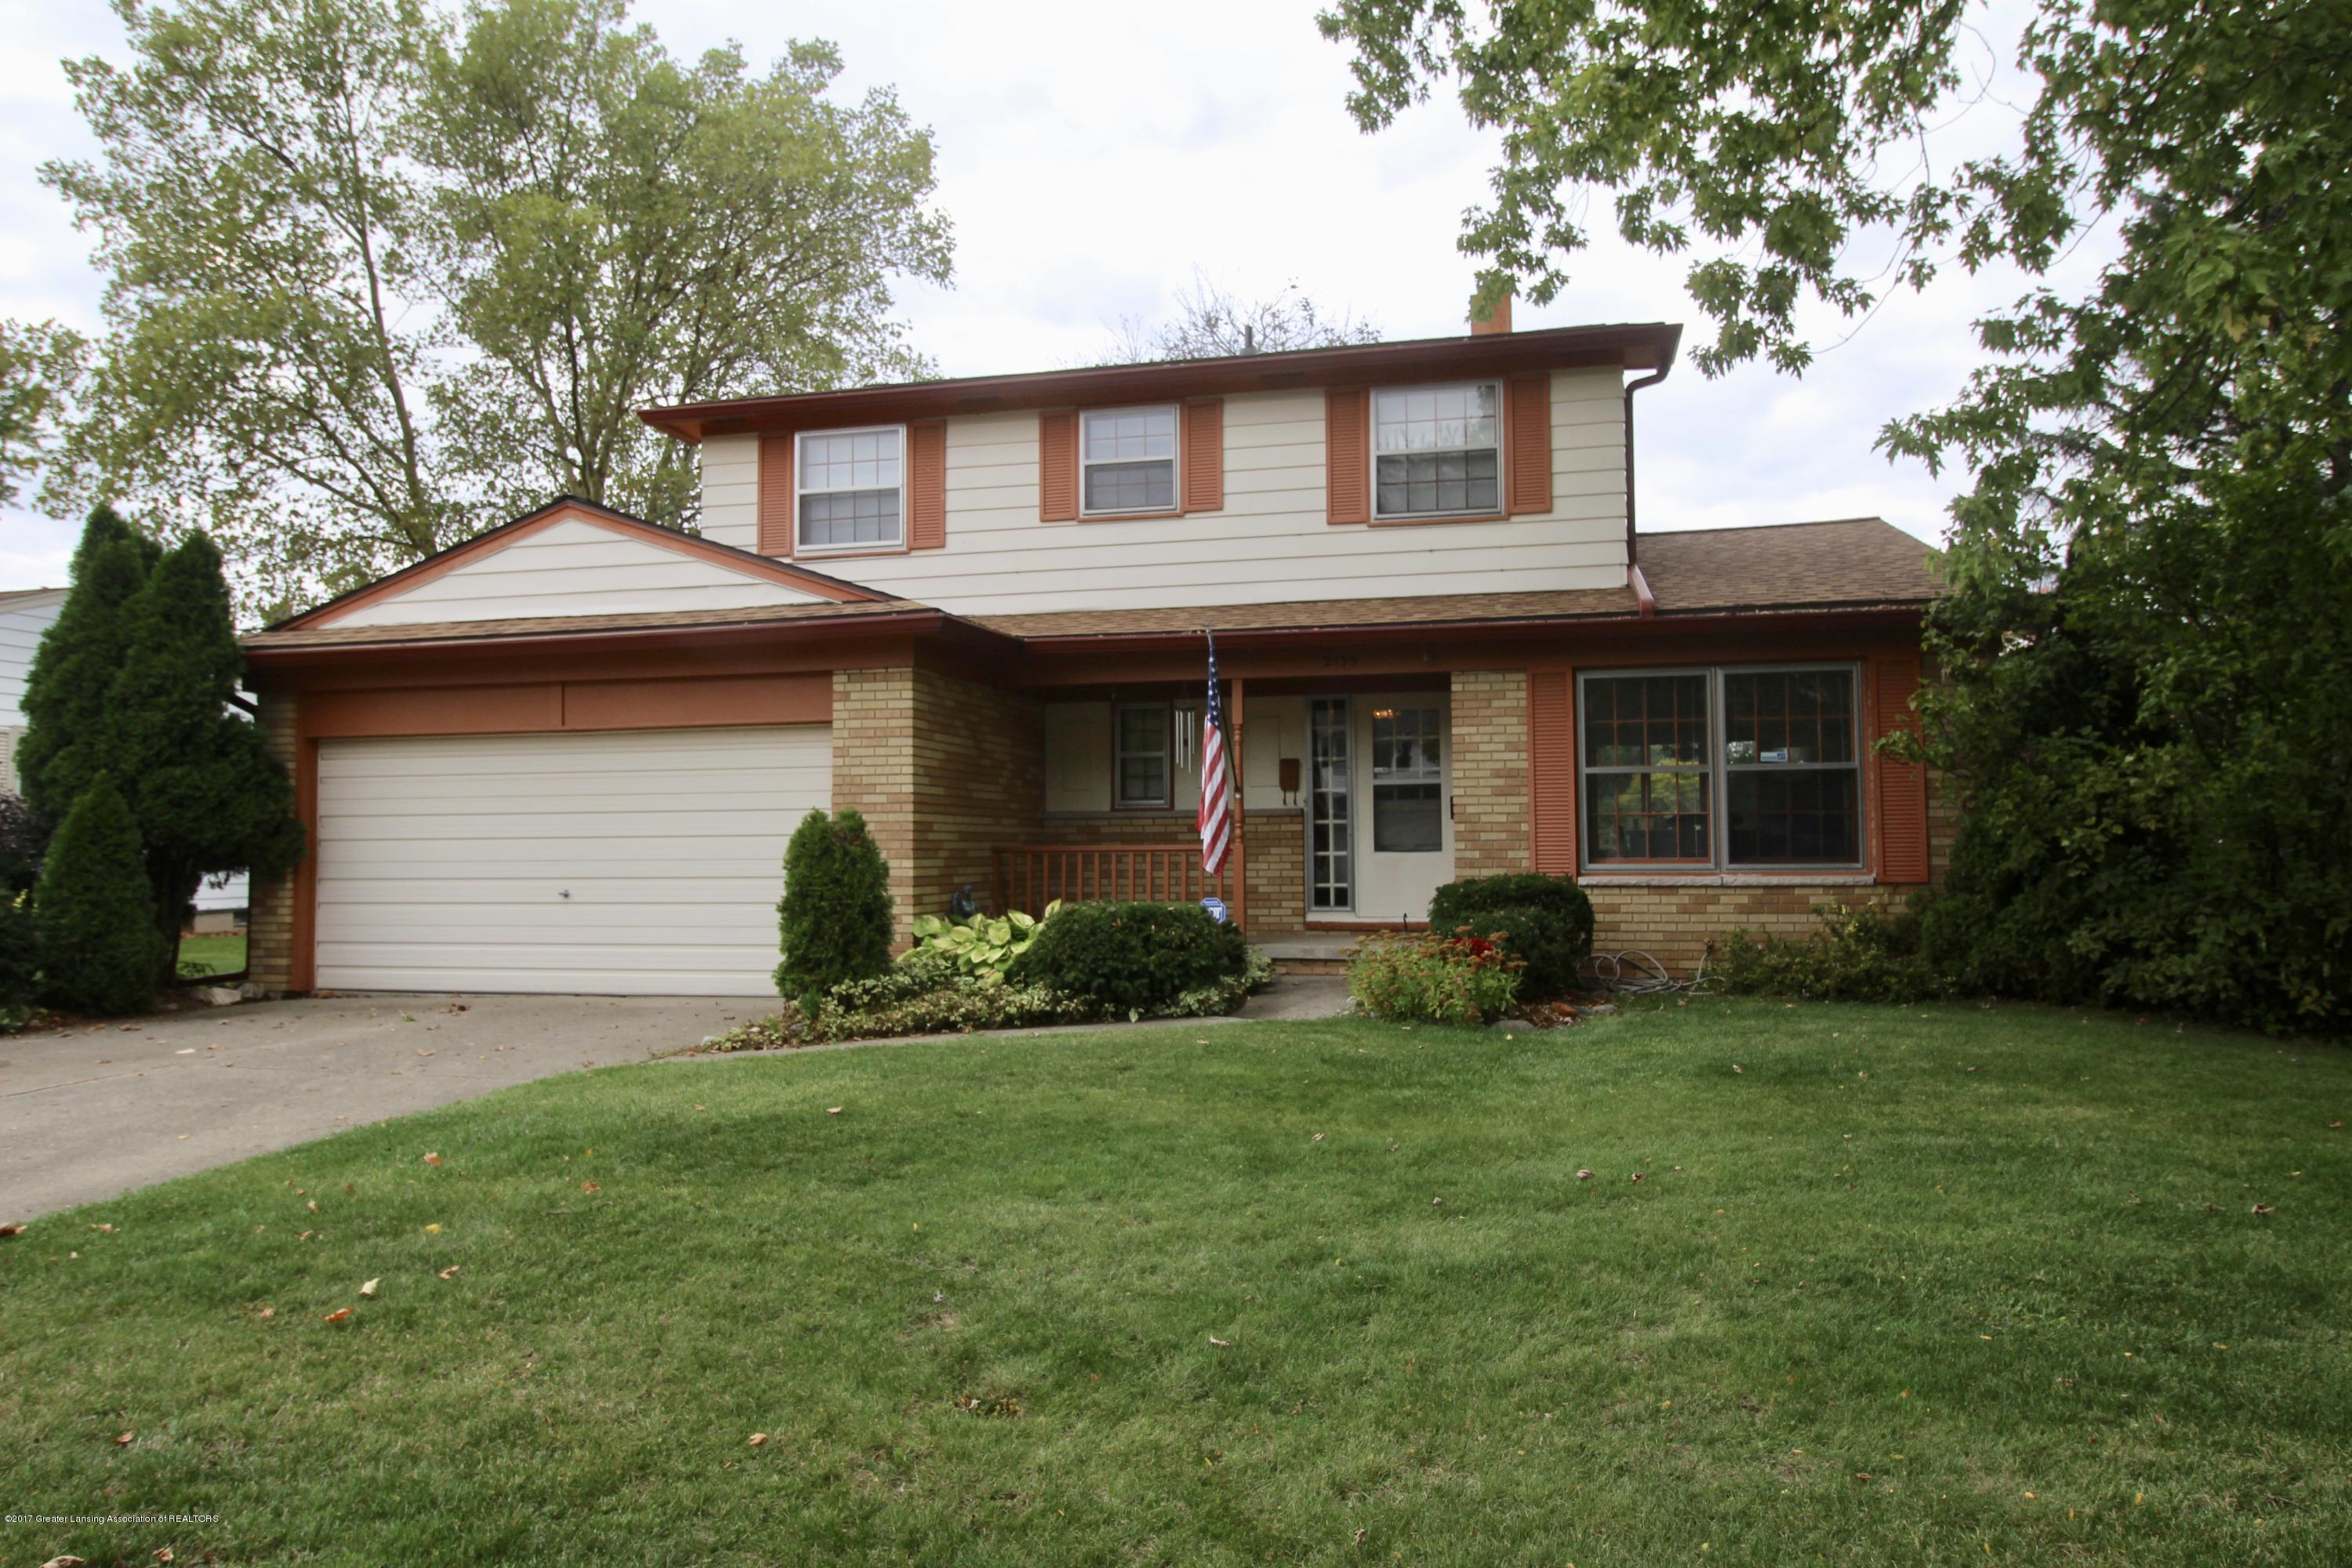 2135 Cogswell Dr - front View - 1